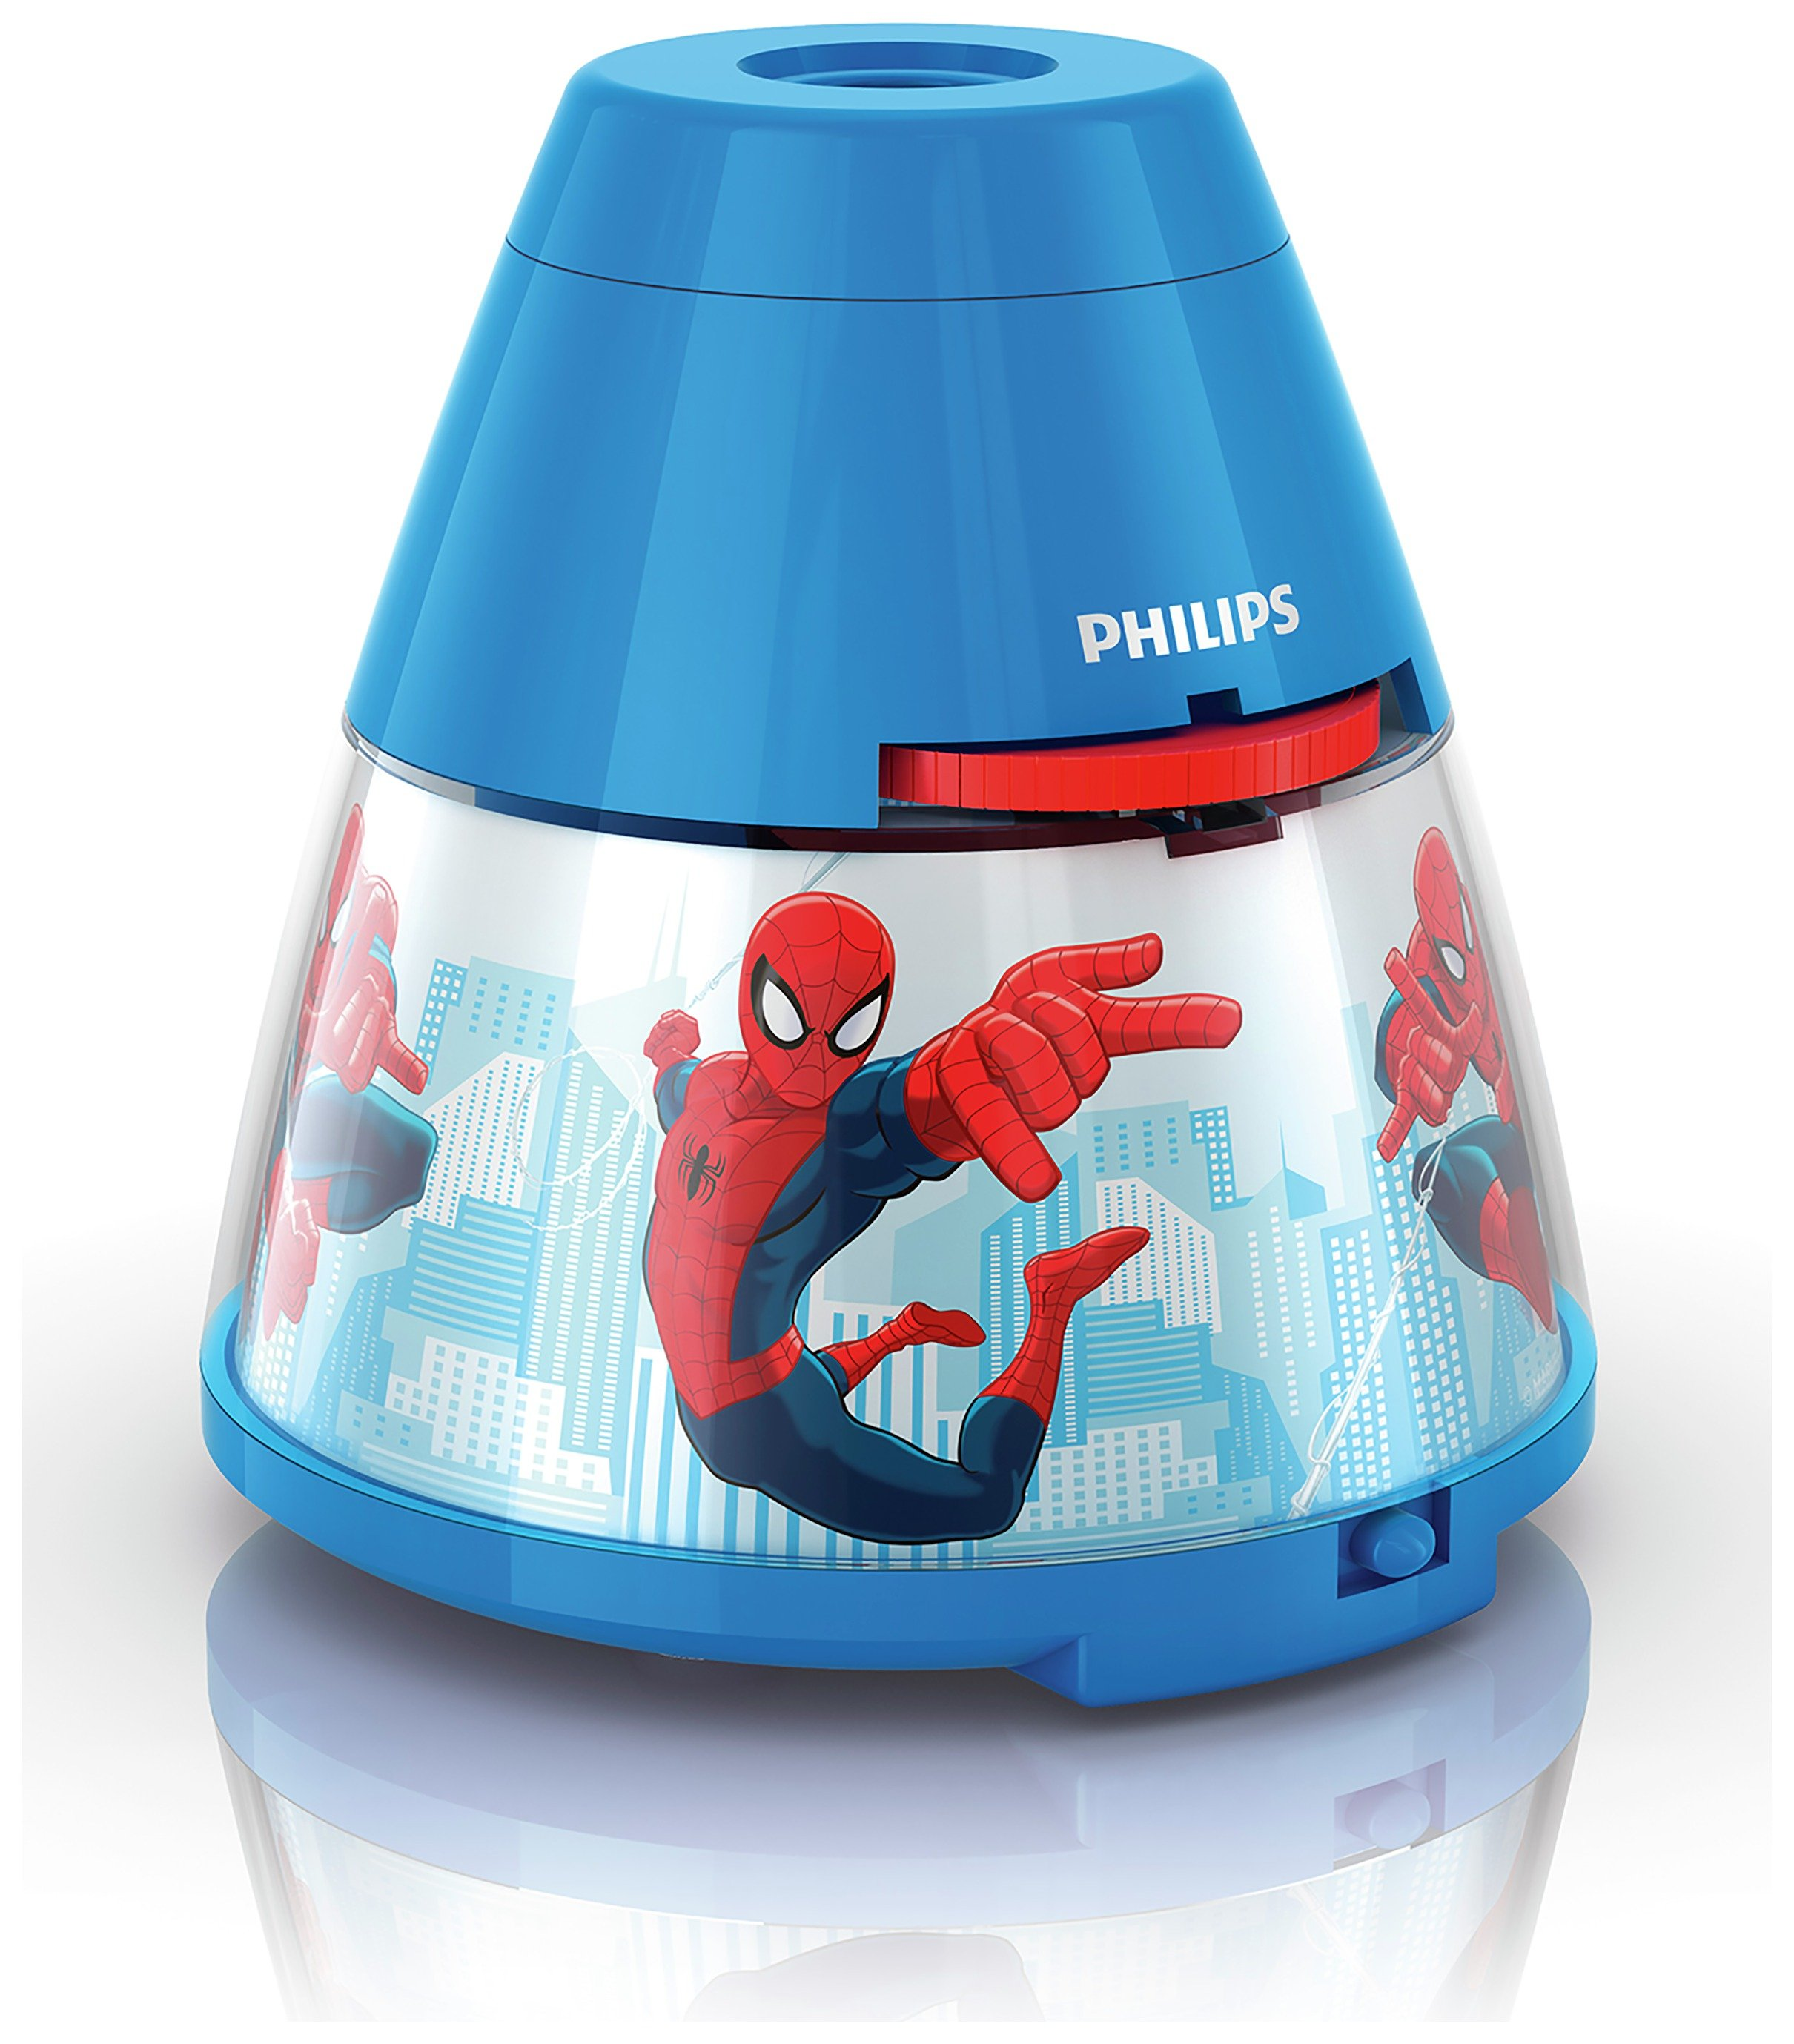 Image of Philips - Marvel Spider-Man LED Projector - Red